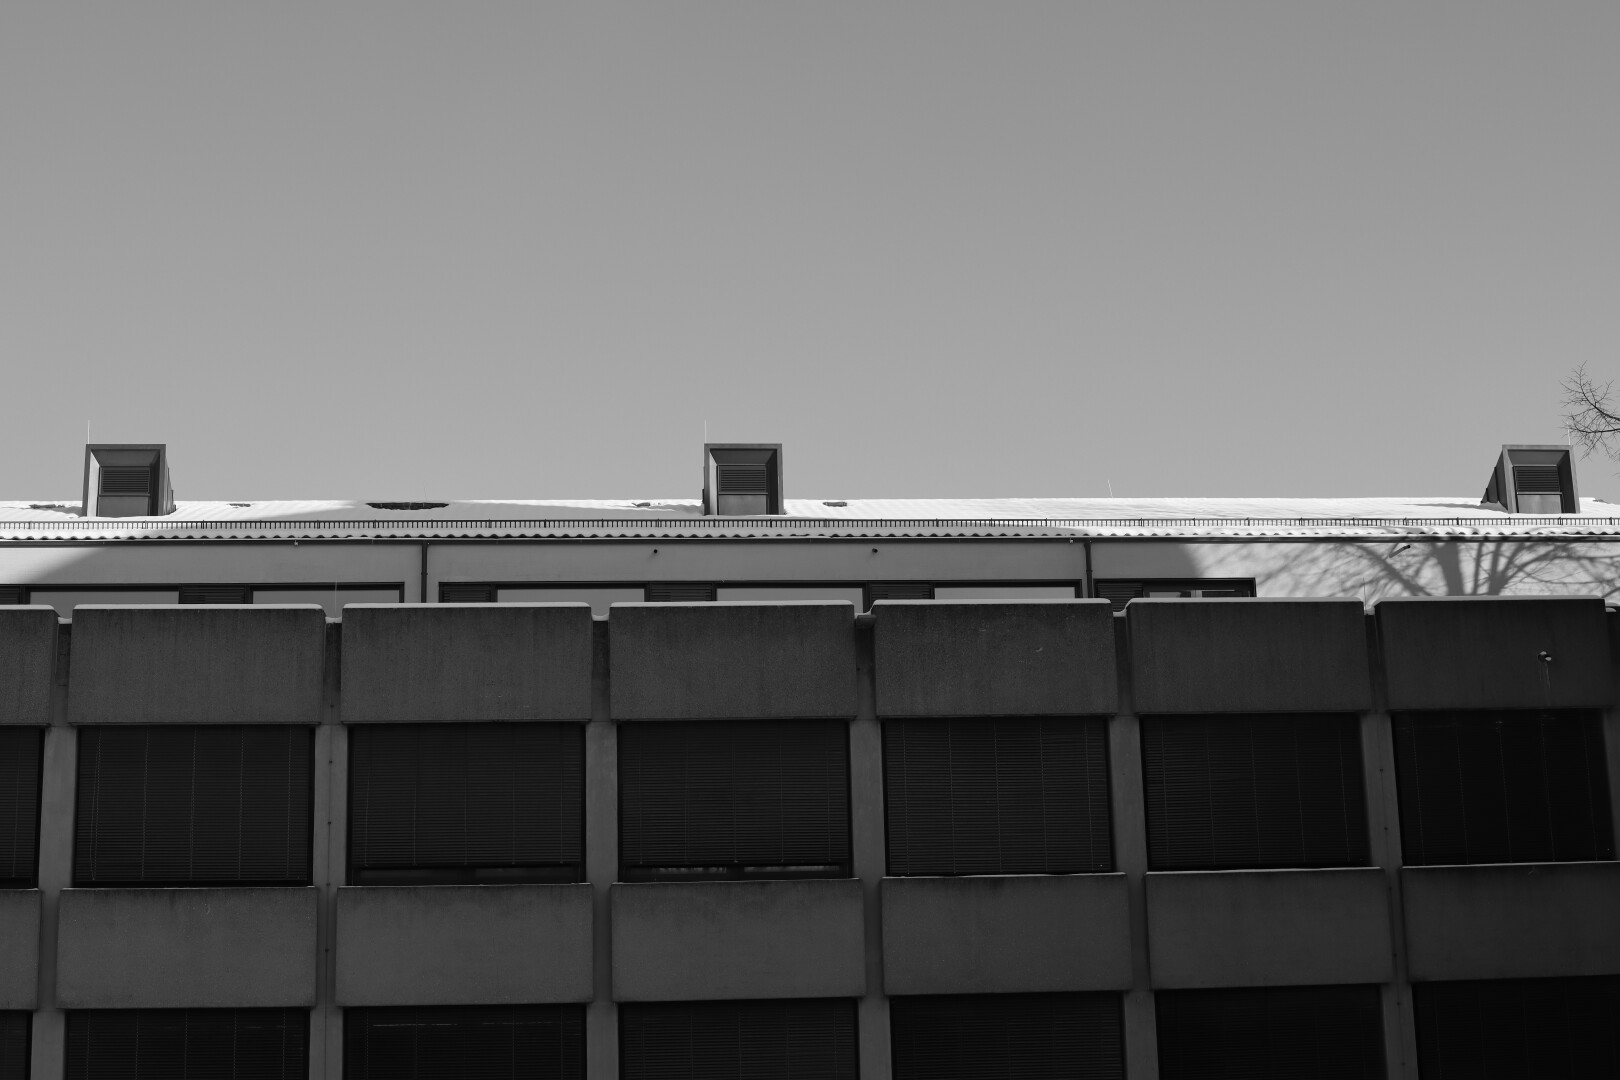 bw pic of part of a (brutalist?) building